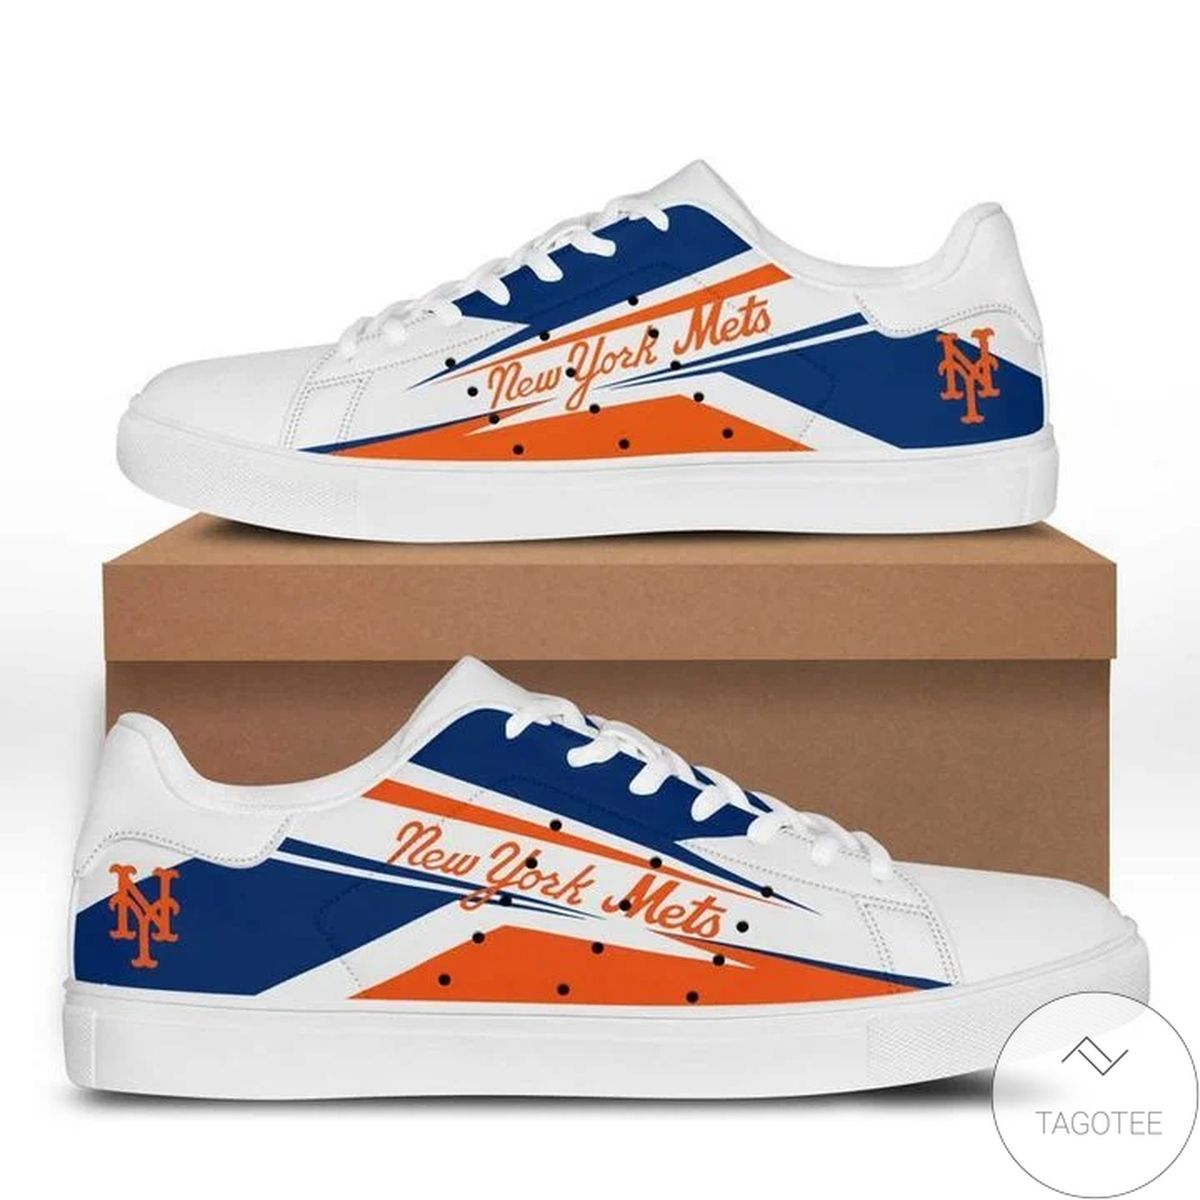 Mlb New York Mets Stan Smith Shoes